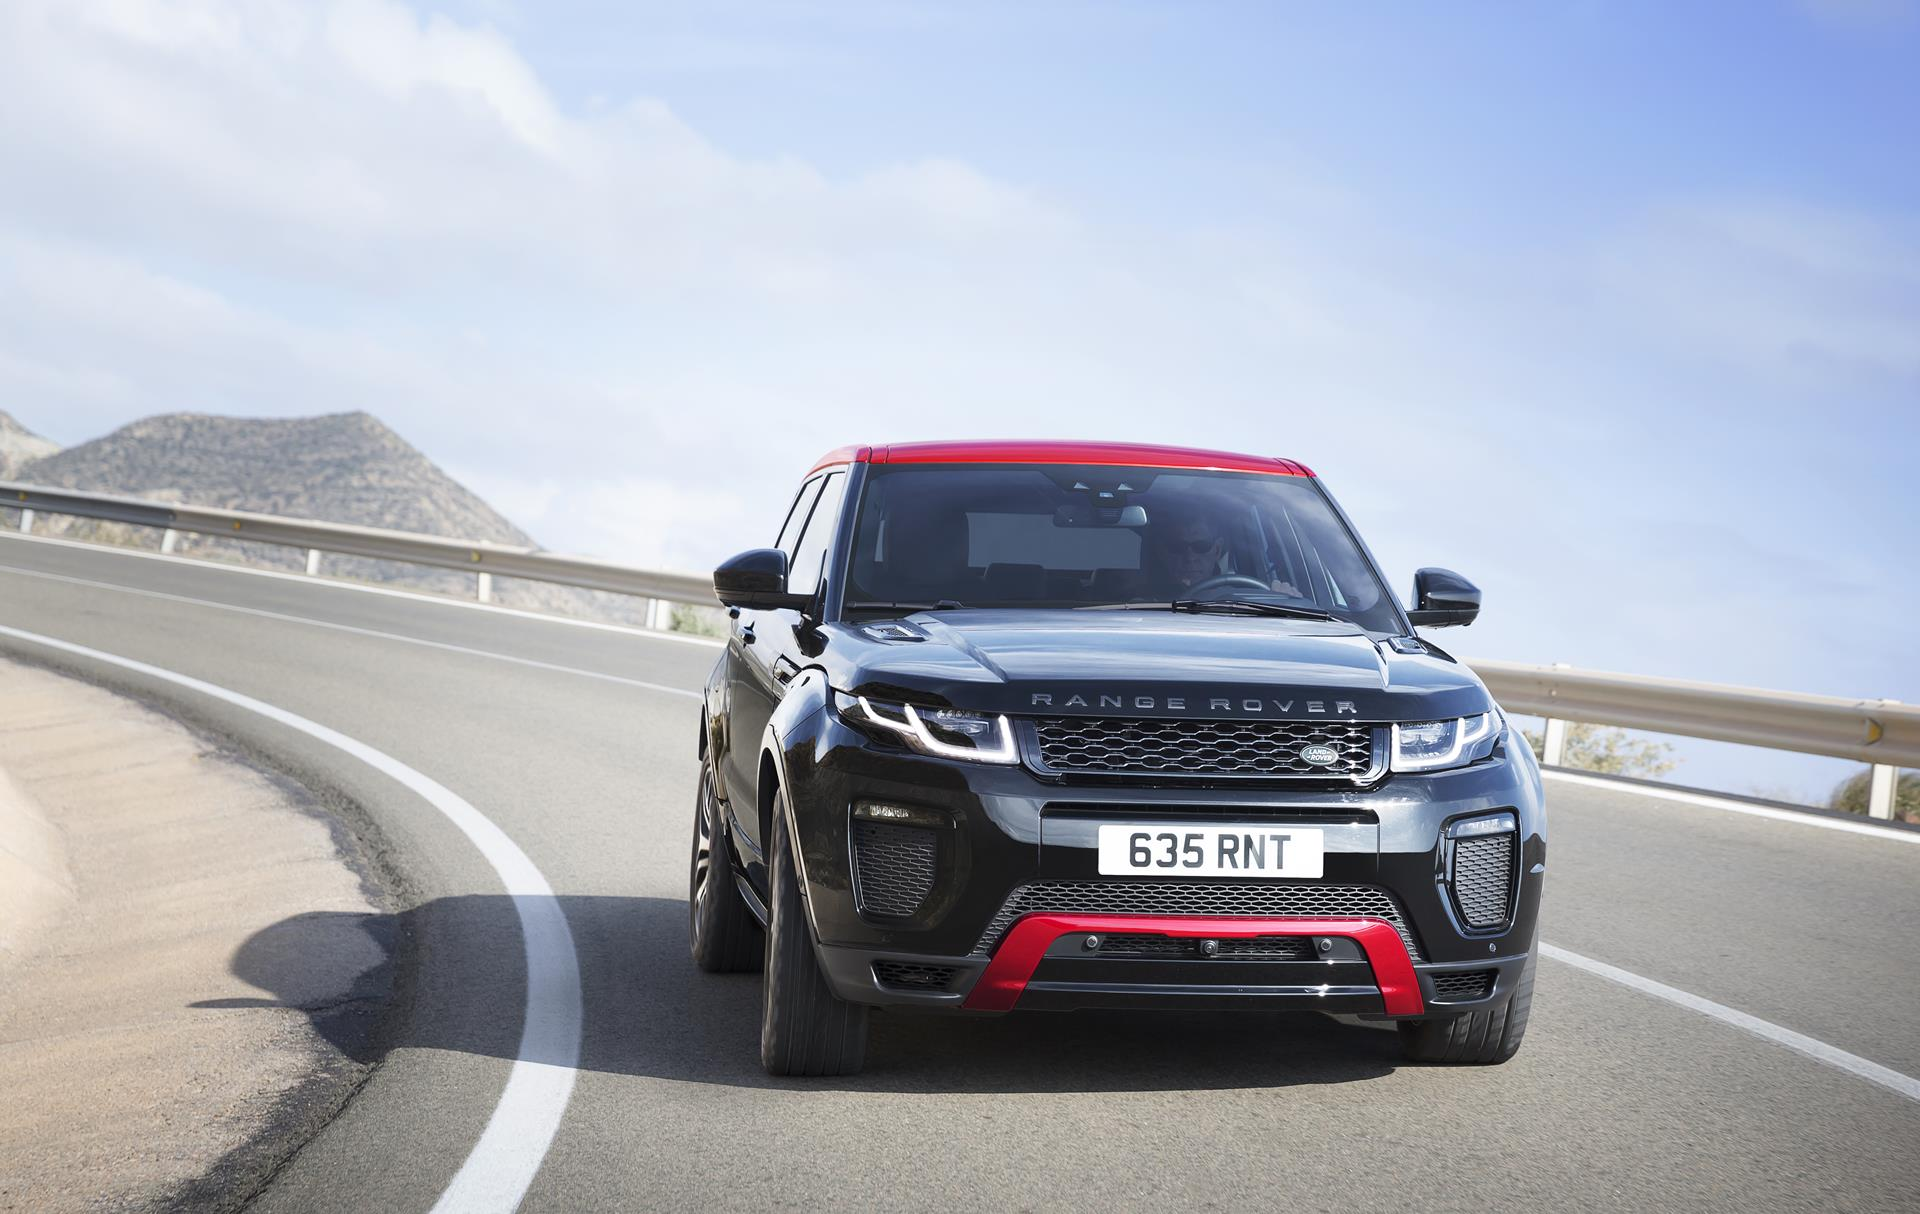 2016 Land Rover Range Rover Evoque Ember Edition News And Information